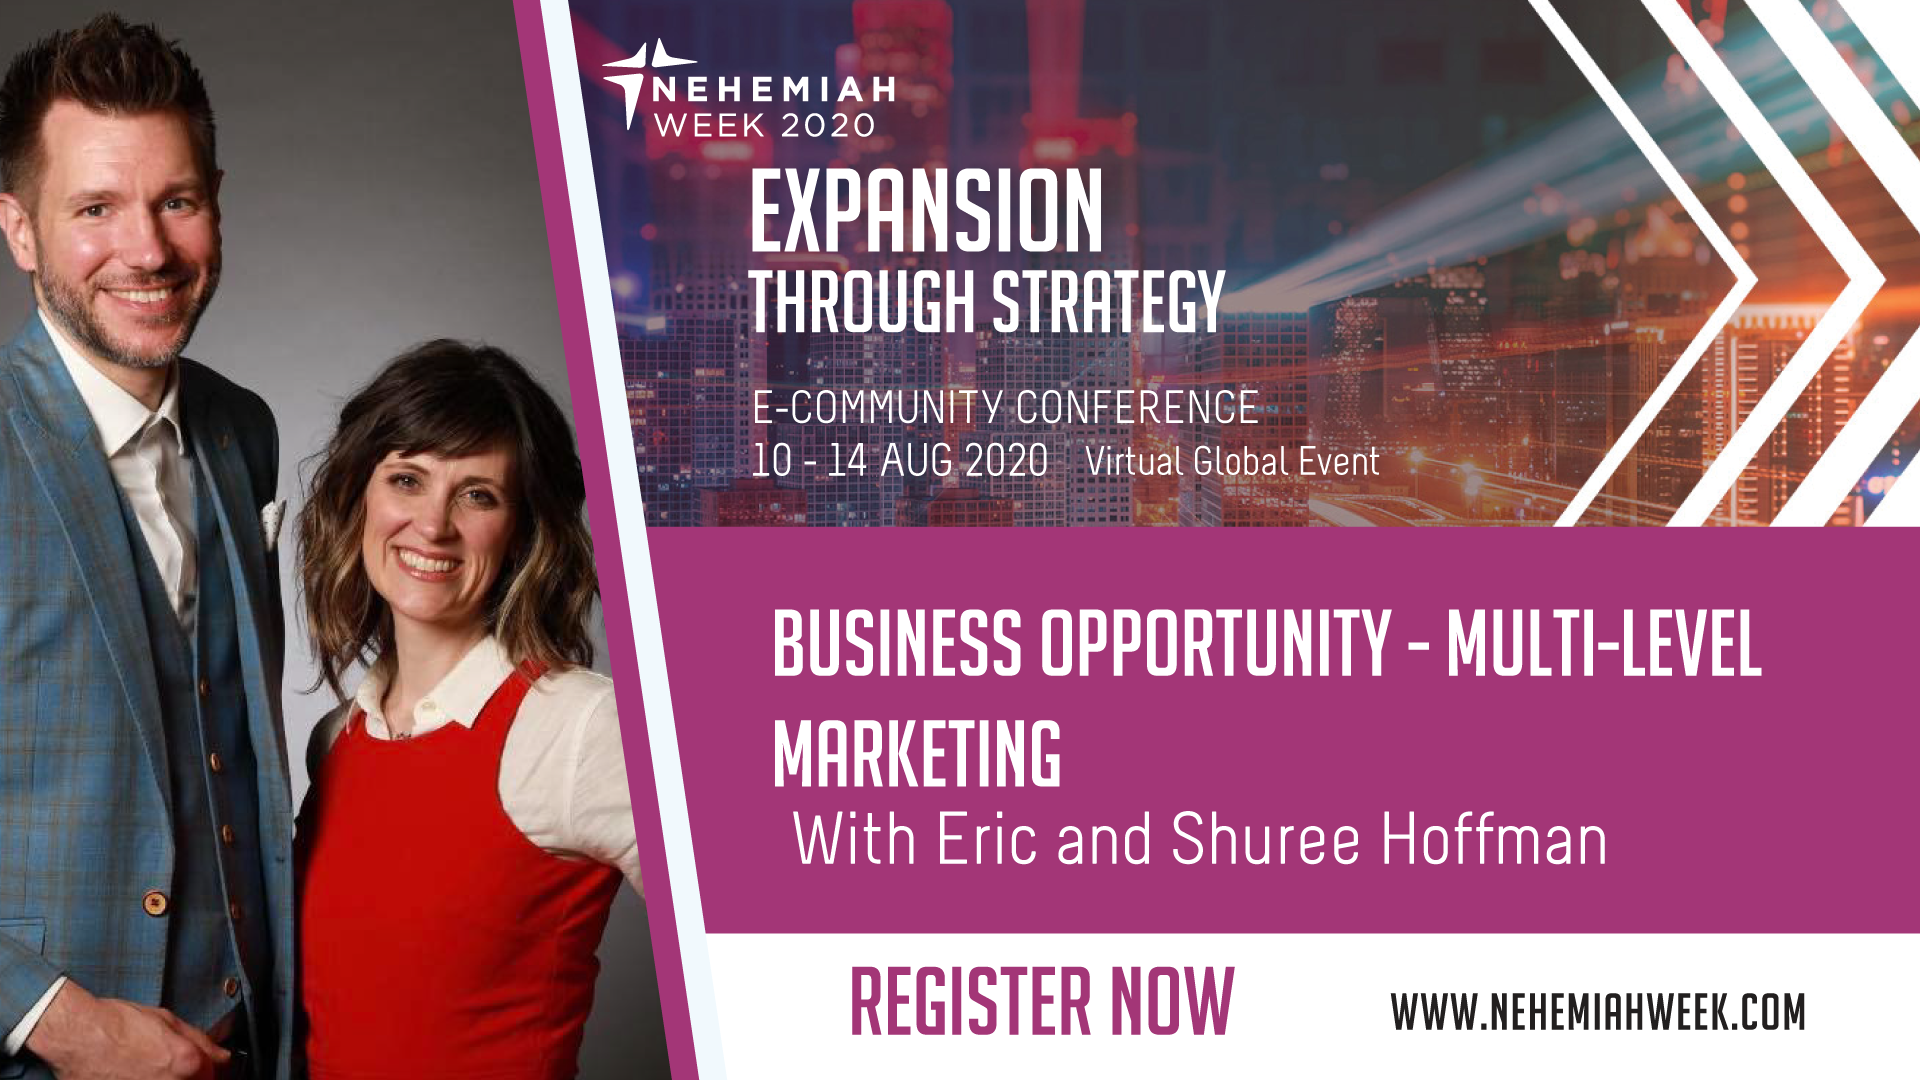 Business Opportunity Multi Level Marketing with Eric and Shuree Hoffman